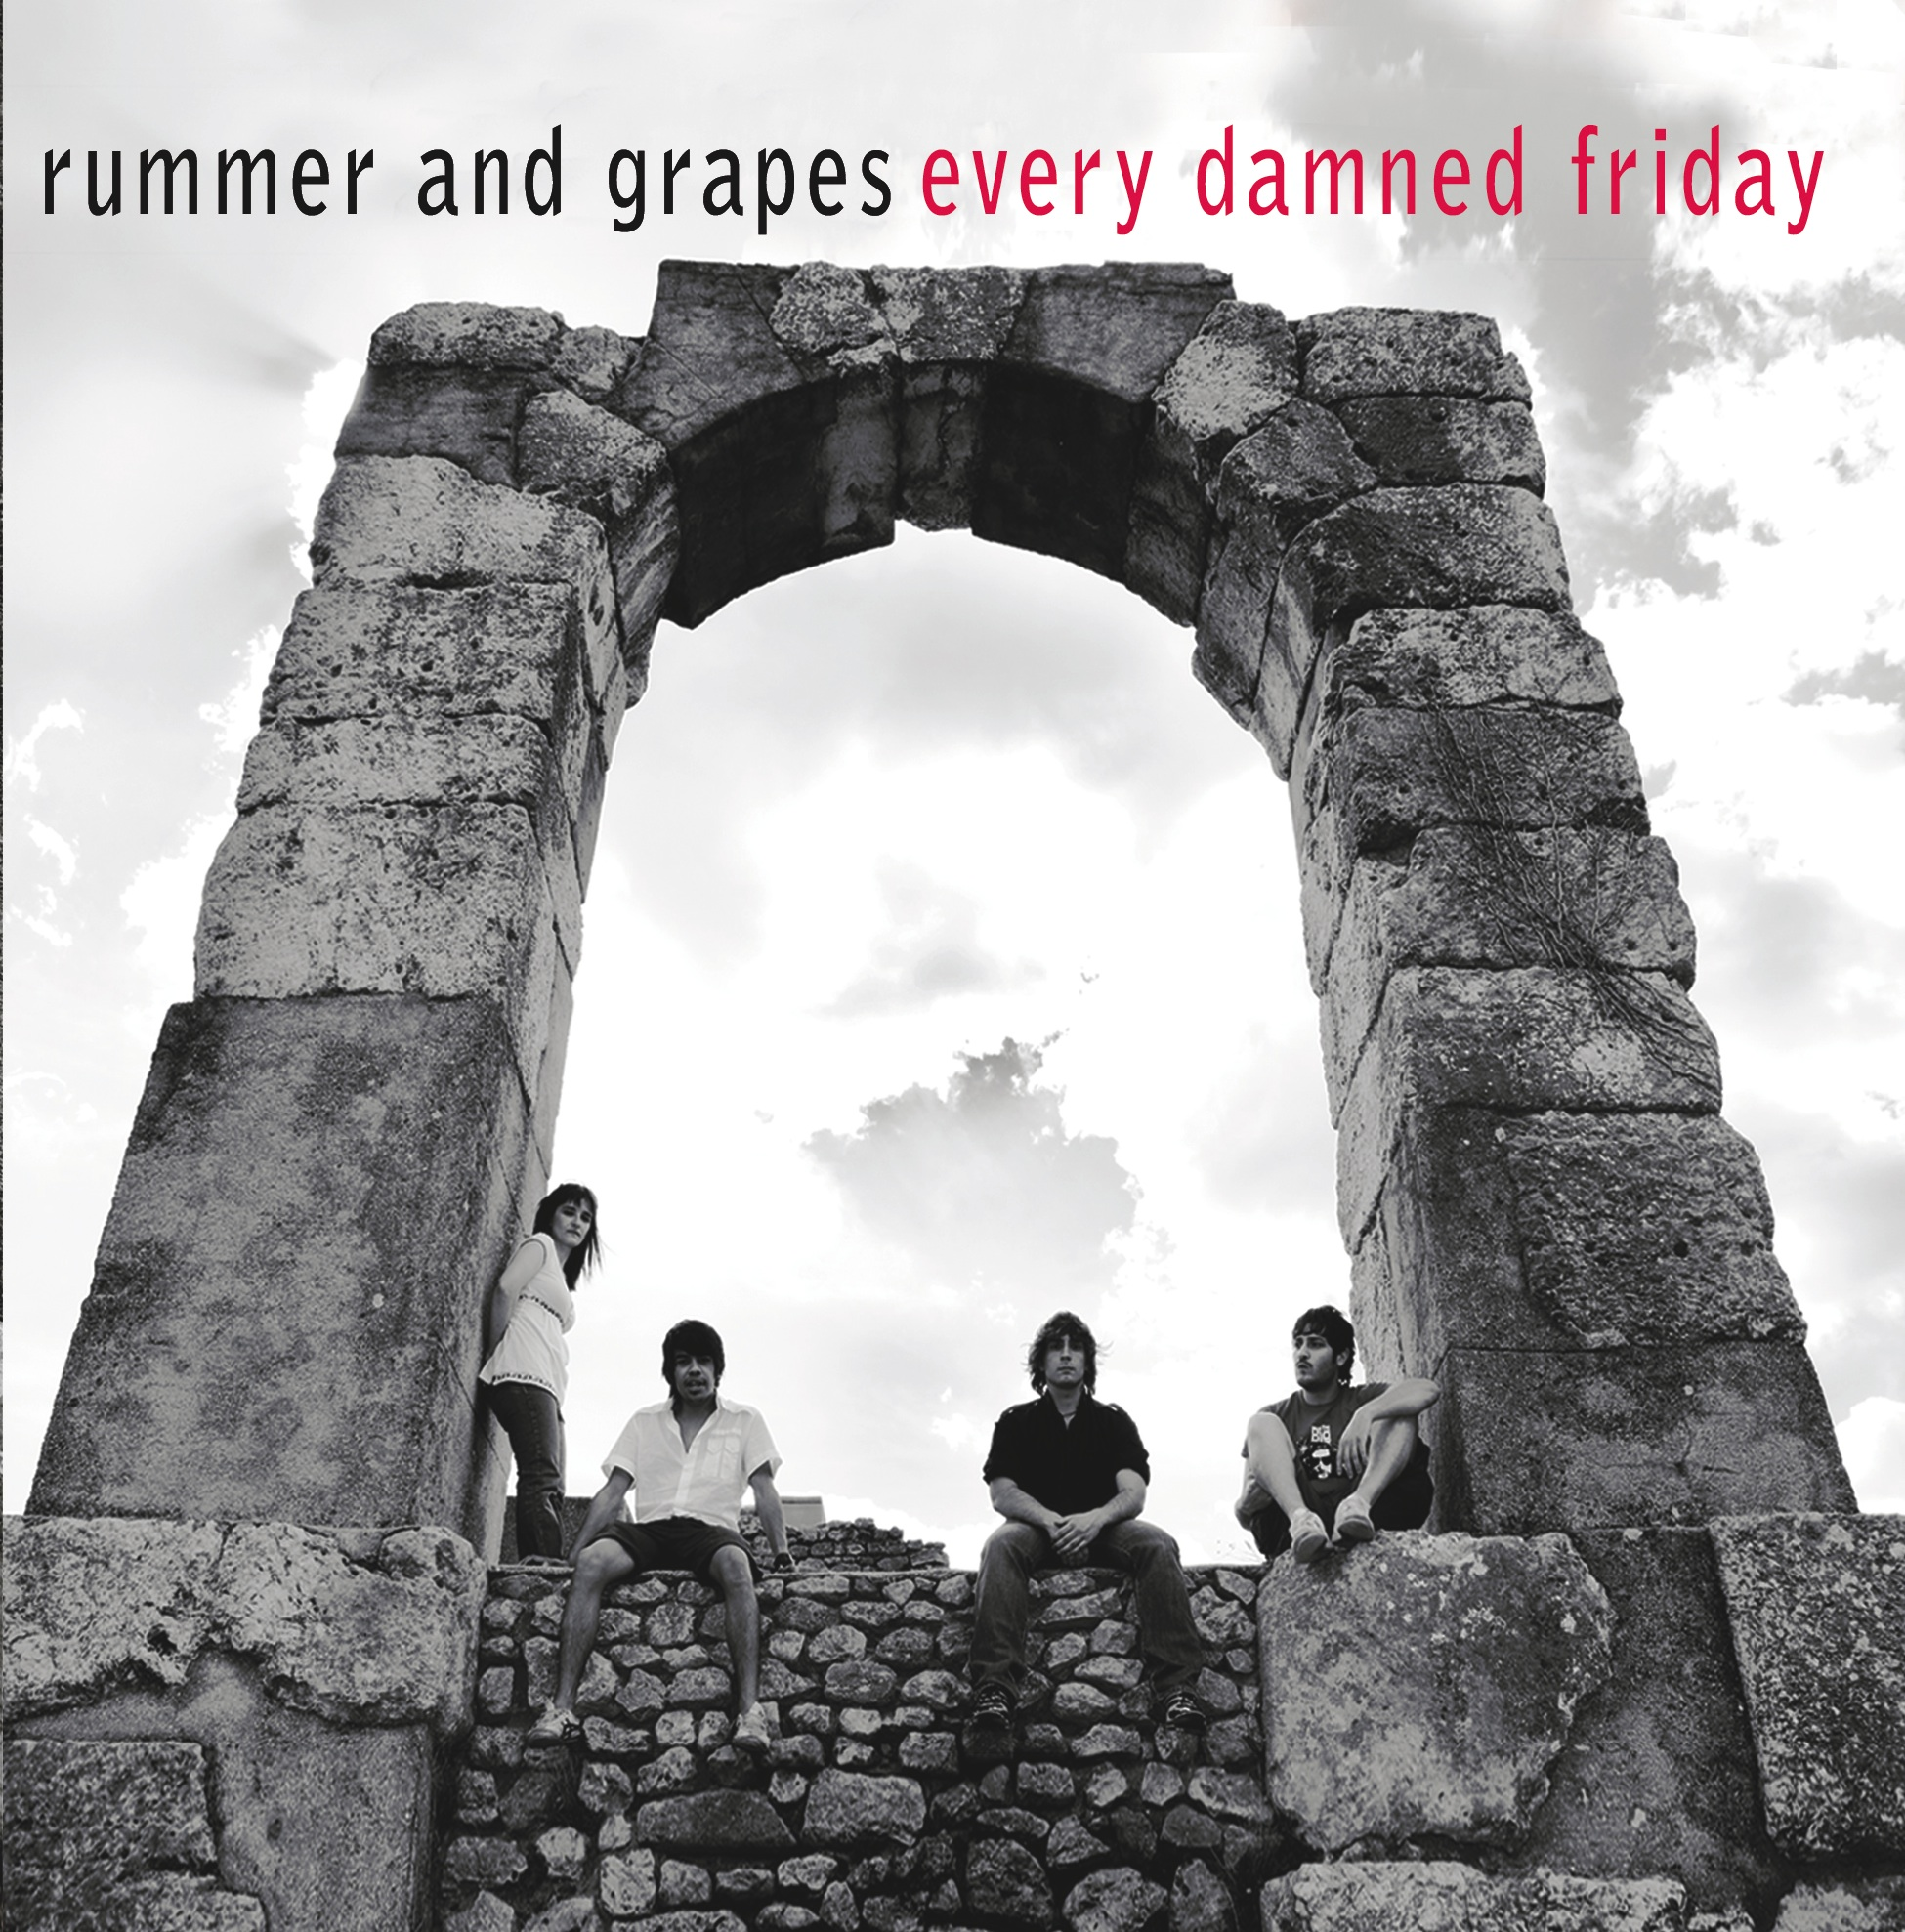 rummer  and grapes every damned friday front cover